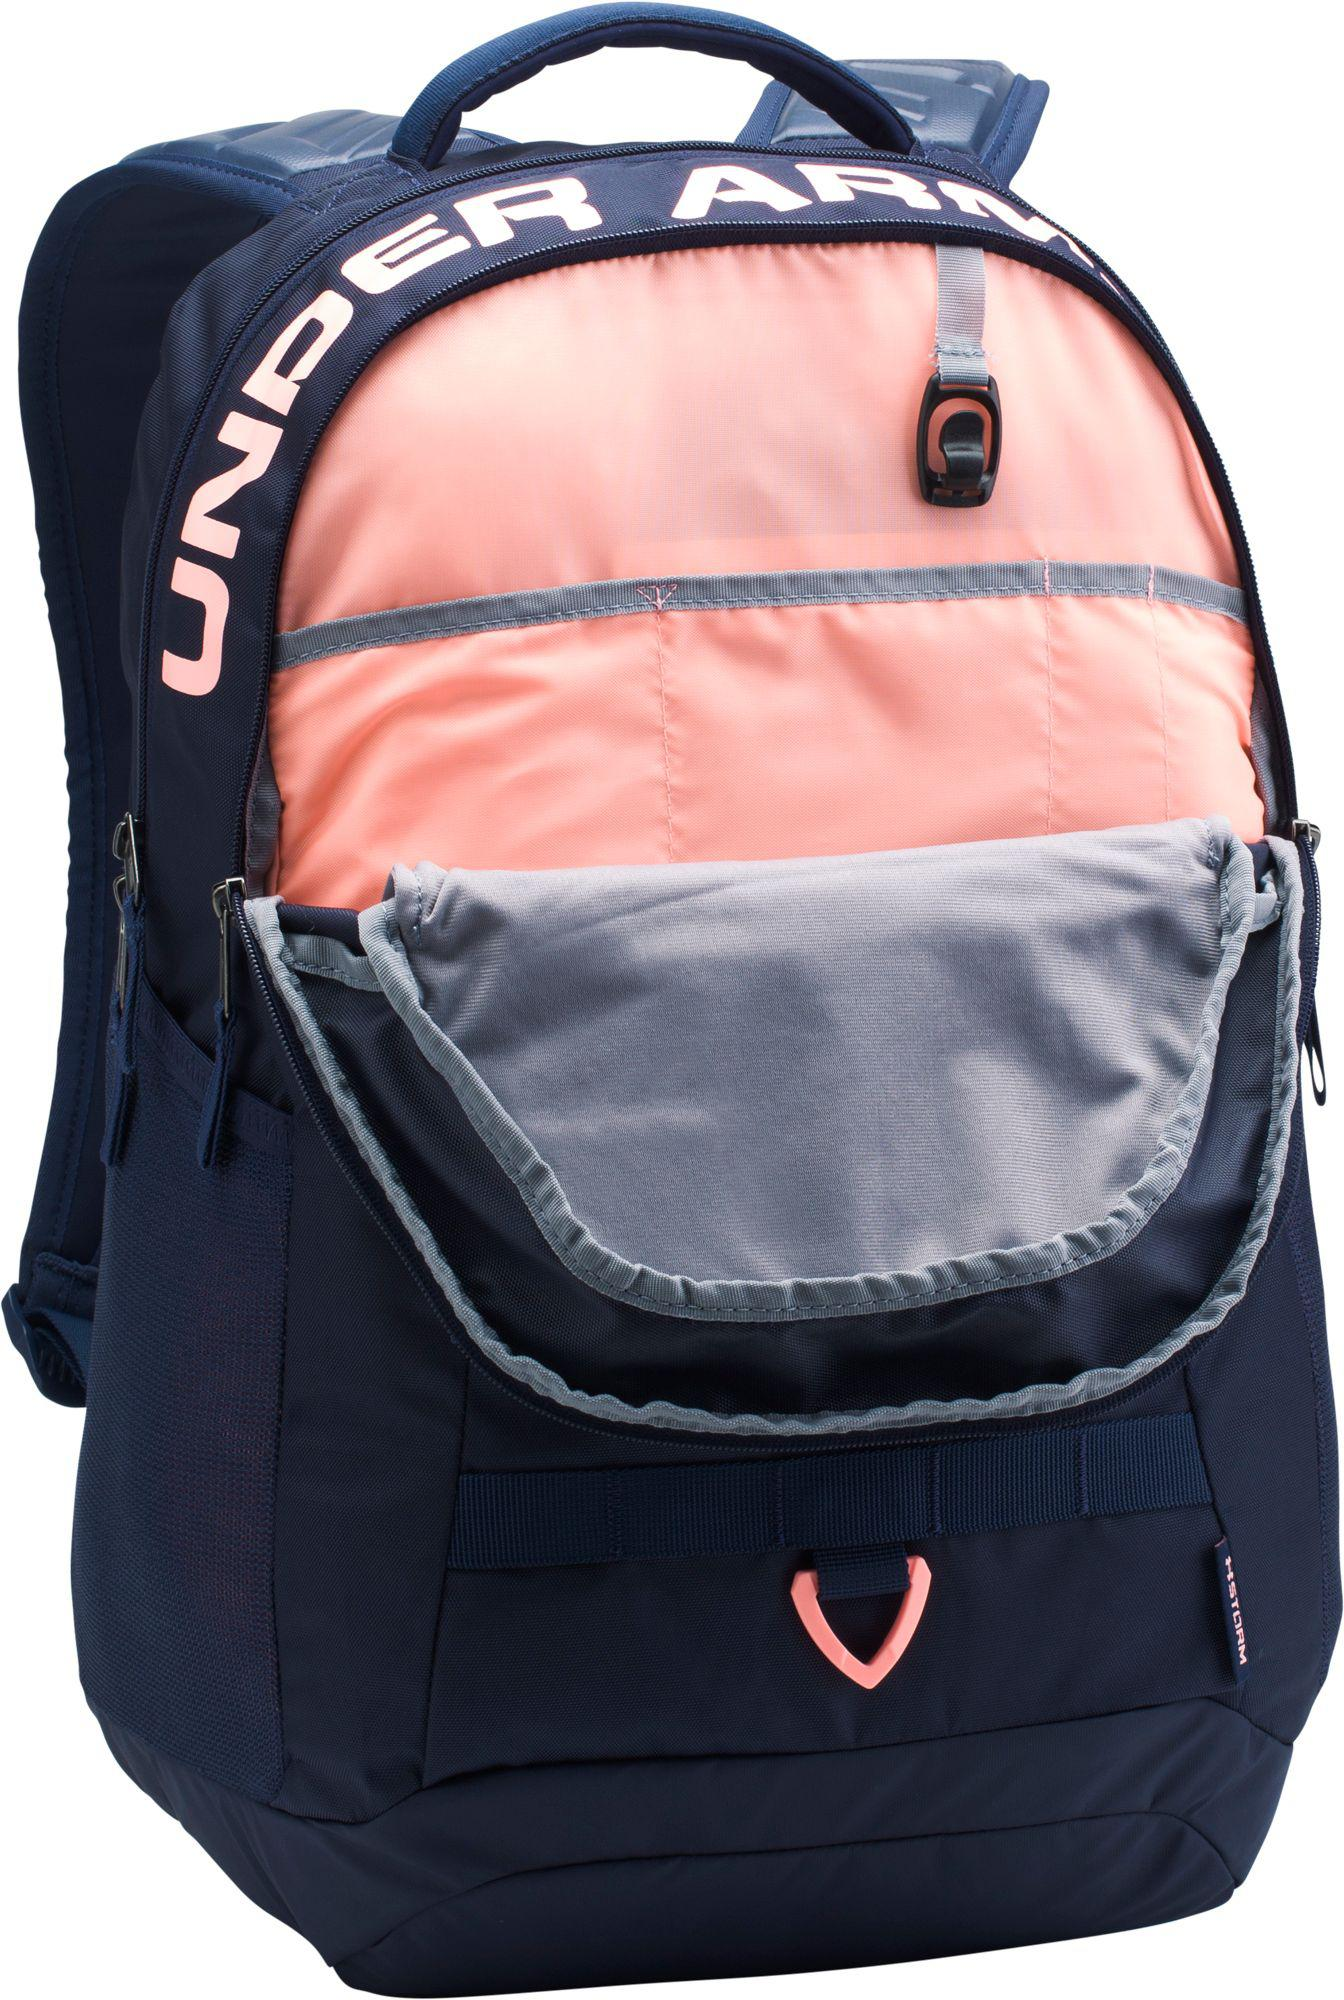 8034cb5320e1 Navy And Pink Under Armour Backpack- Fenix Toulouse Handball